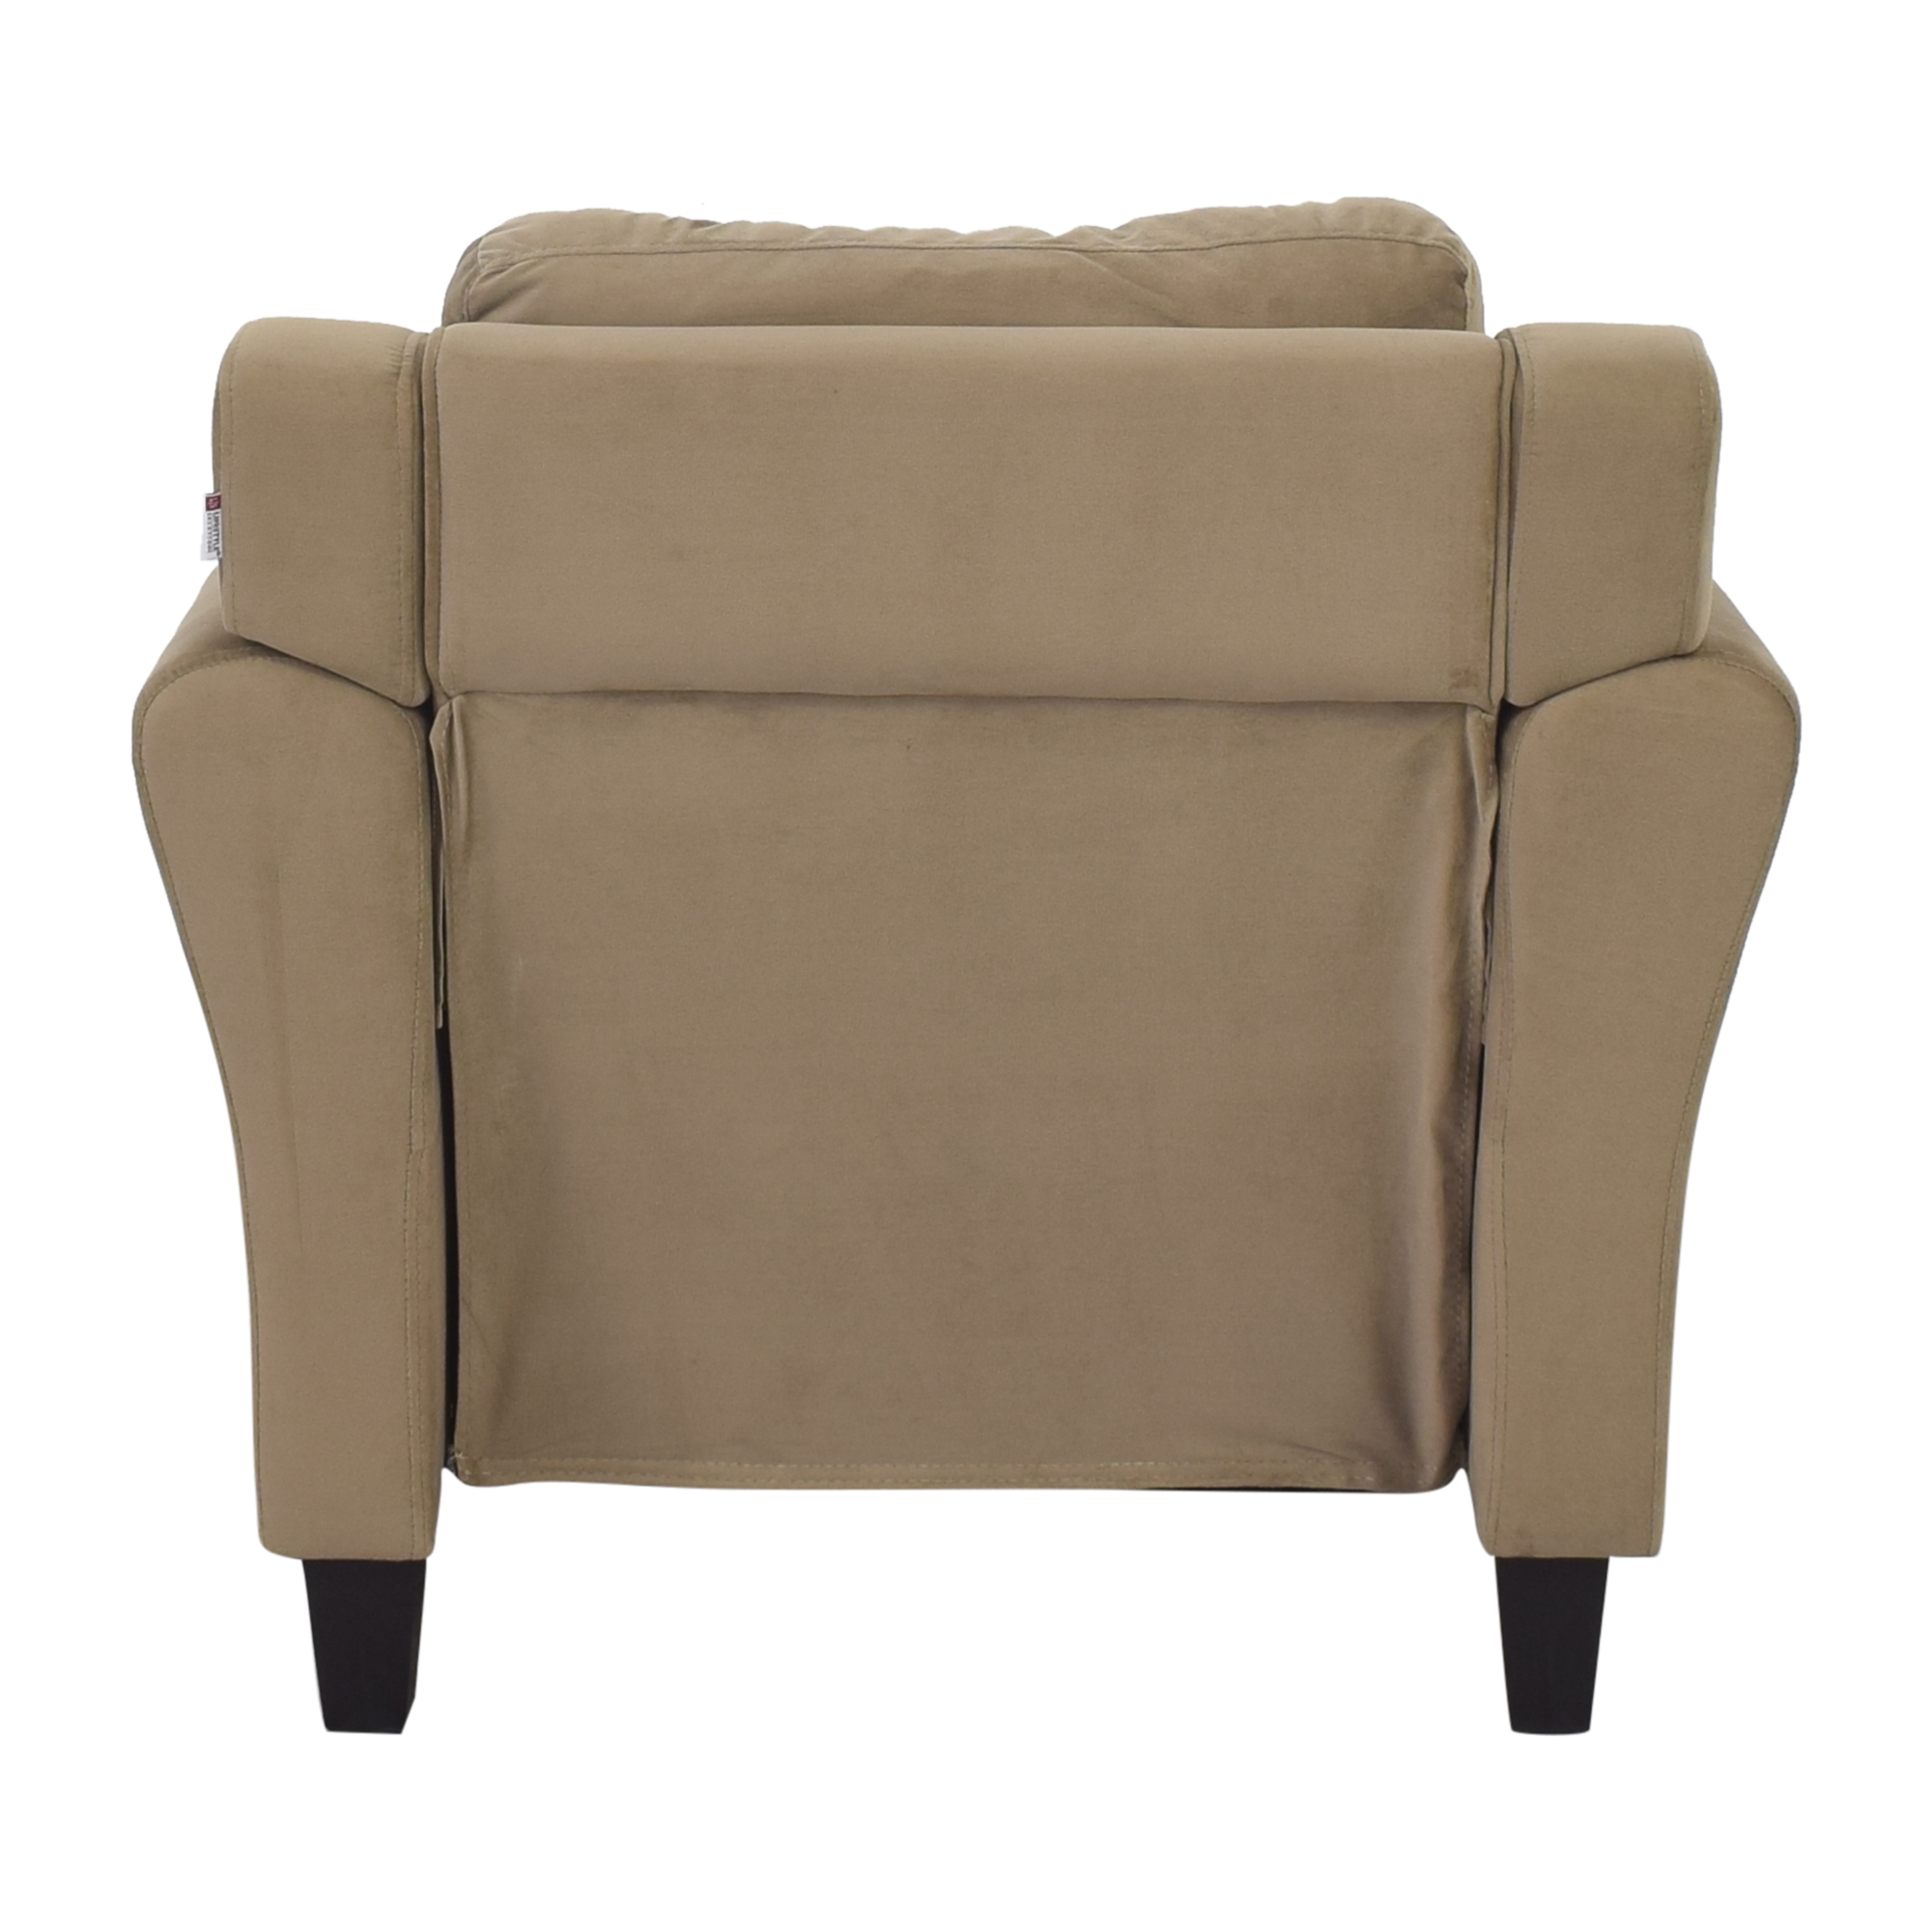 Lifestyle Solutions Lifestyle Solutions Harvard Chair Accent Chairs